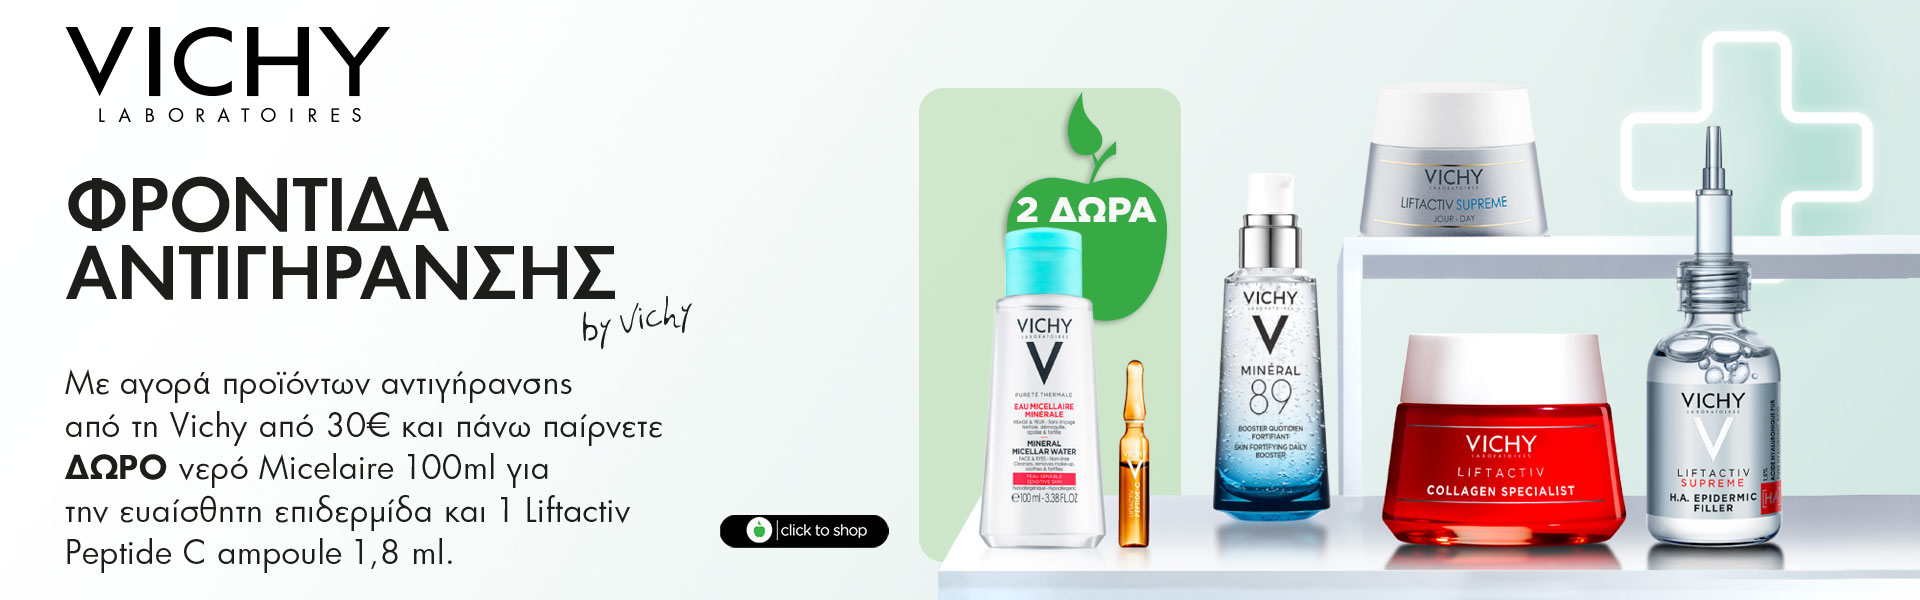 Vichy antiage Septembers gifts